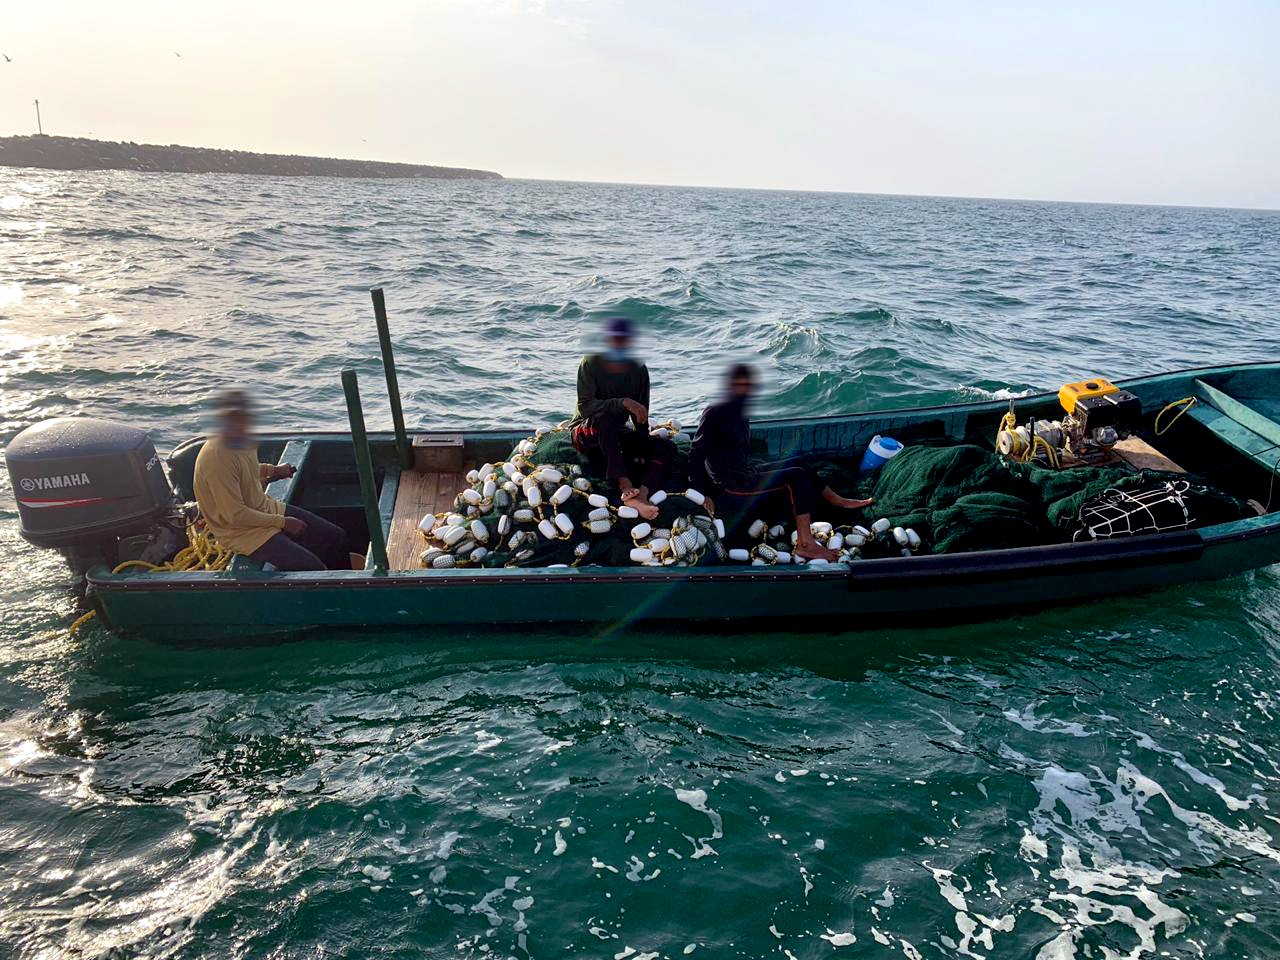 Fishermen arrested in Oman for operating without proper permit